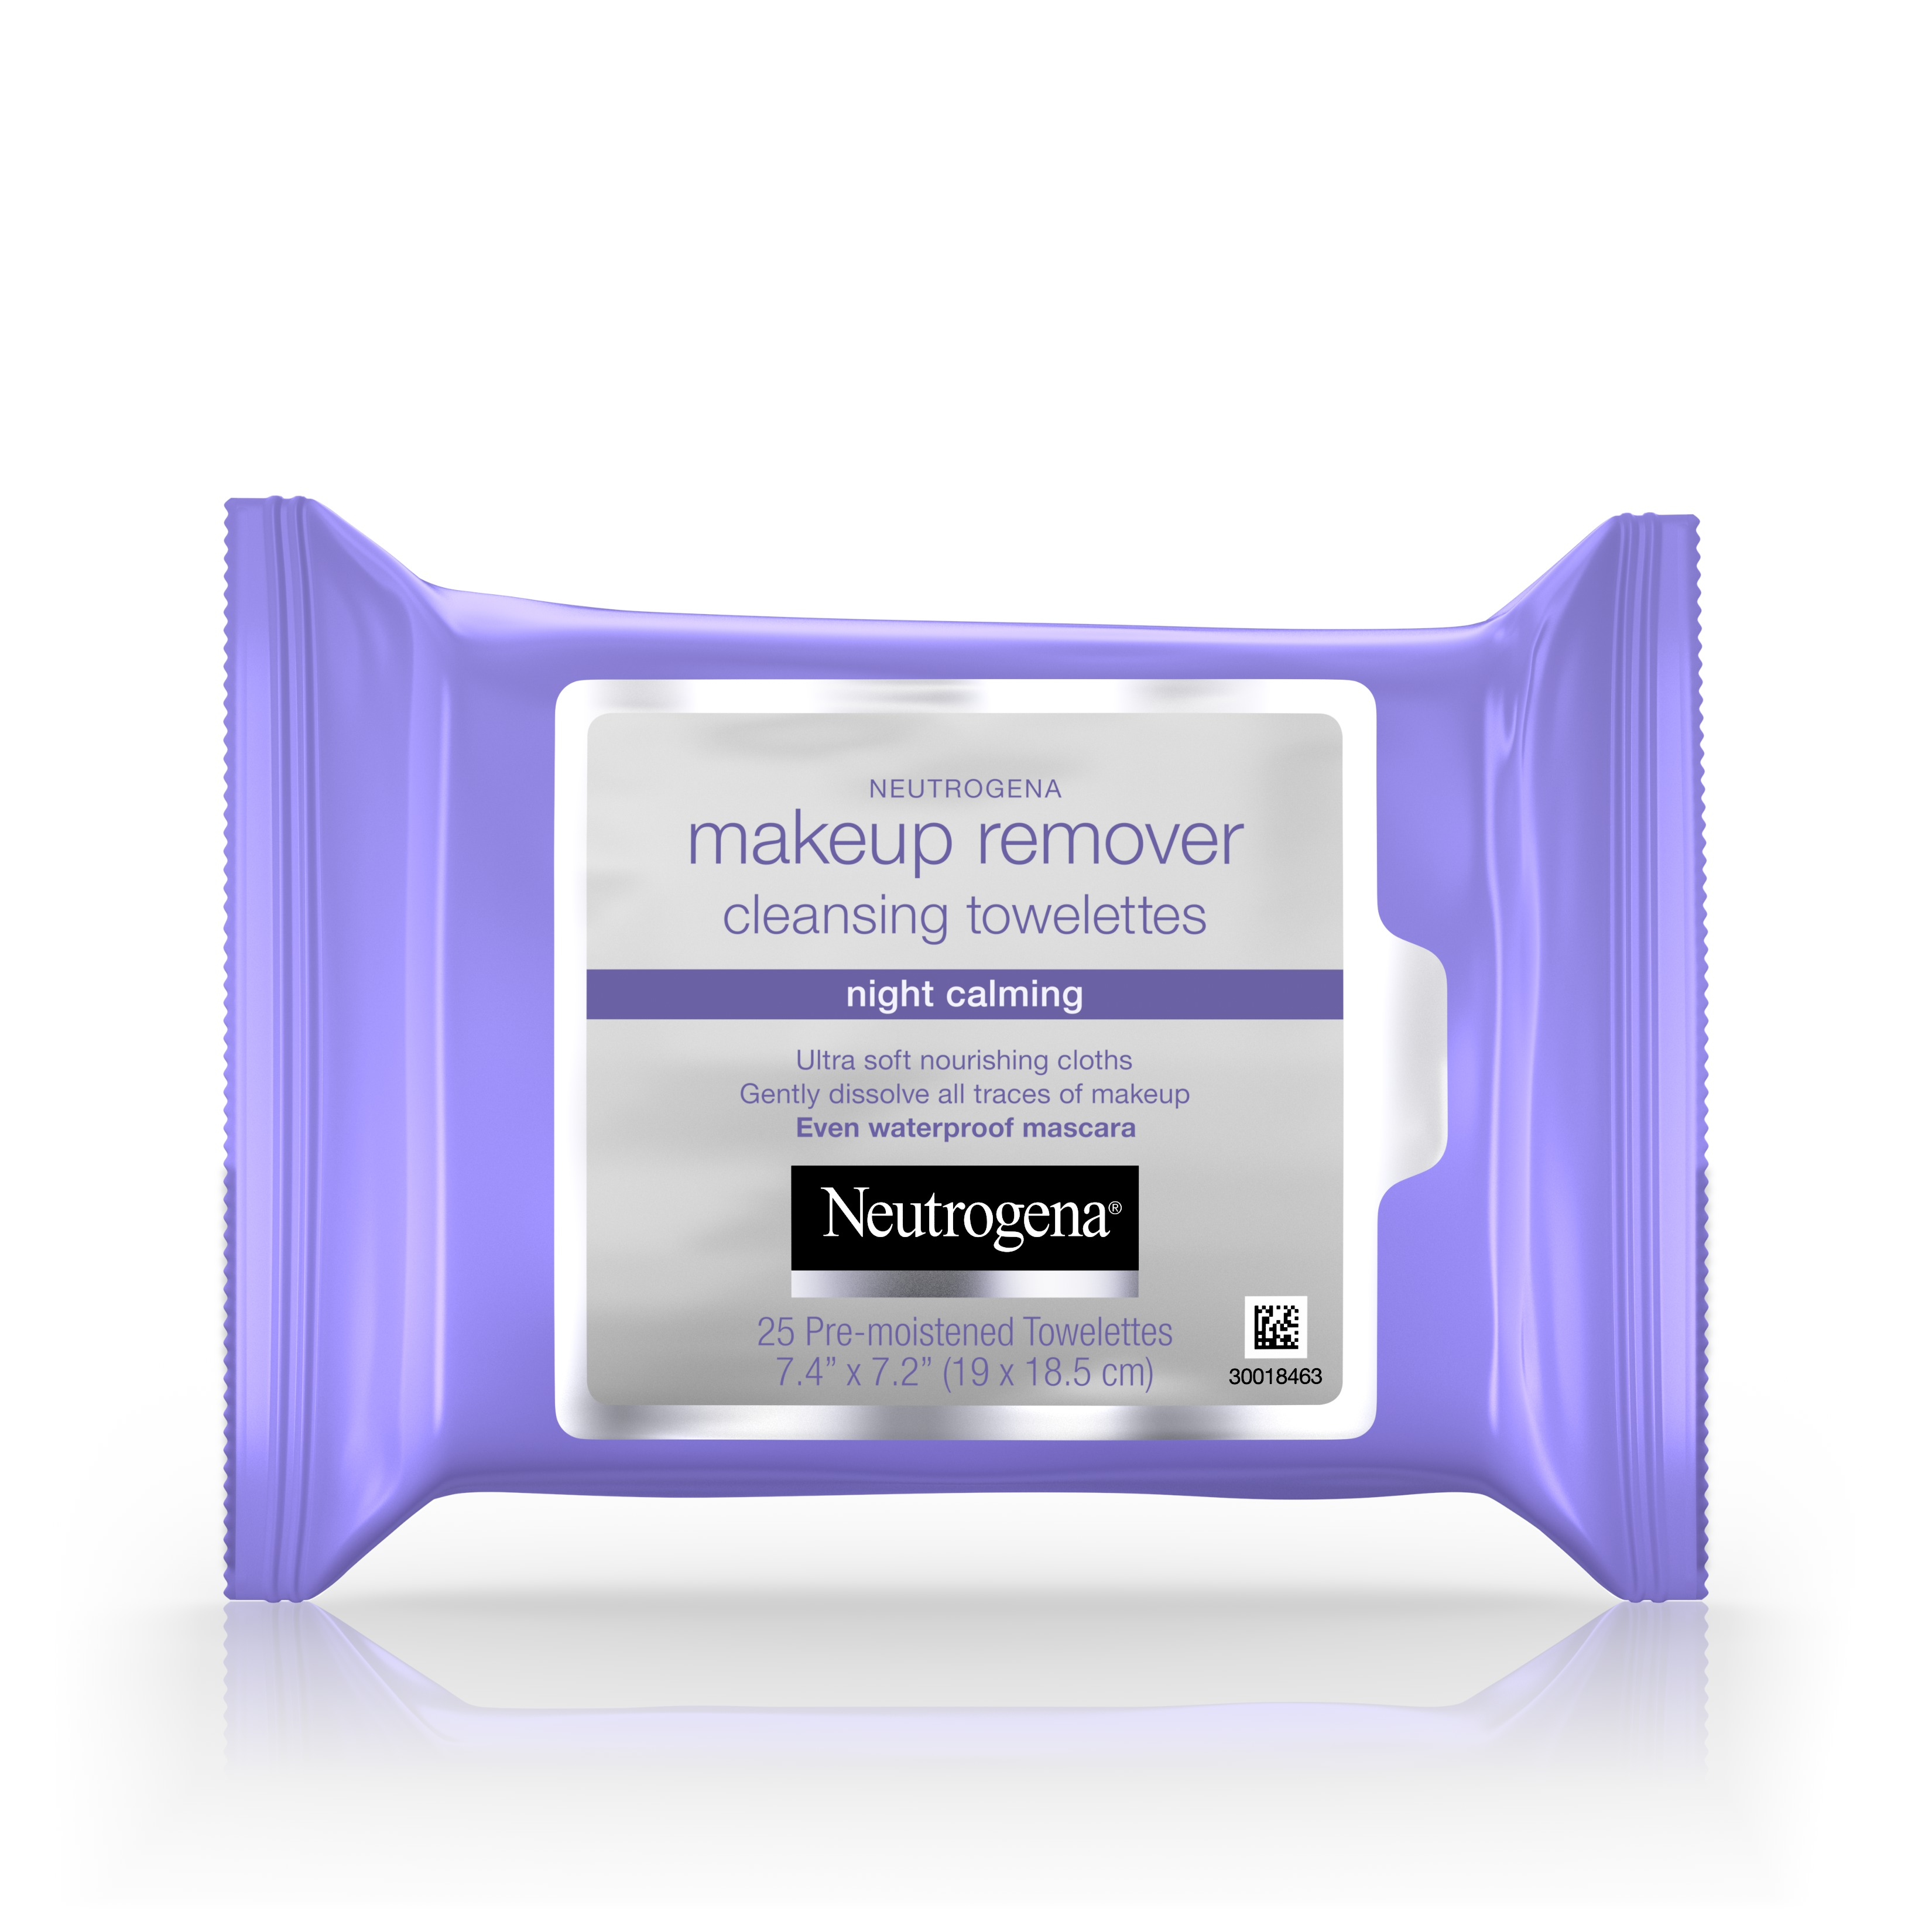 Neutrogena Makeup Remover Night Calming Cleansing Towelettes, 25 ct